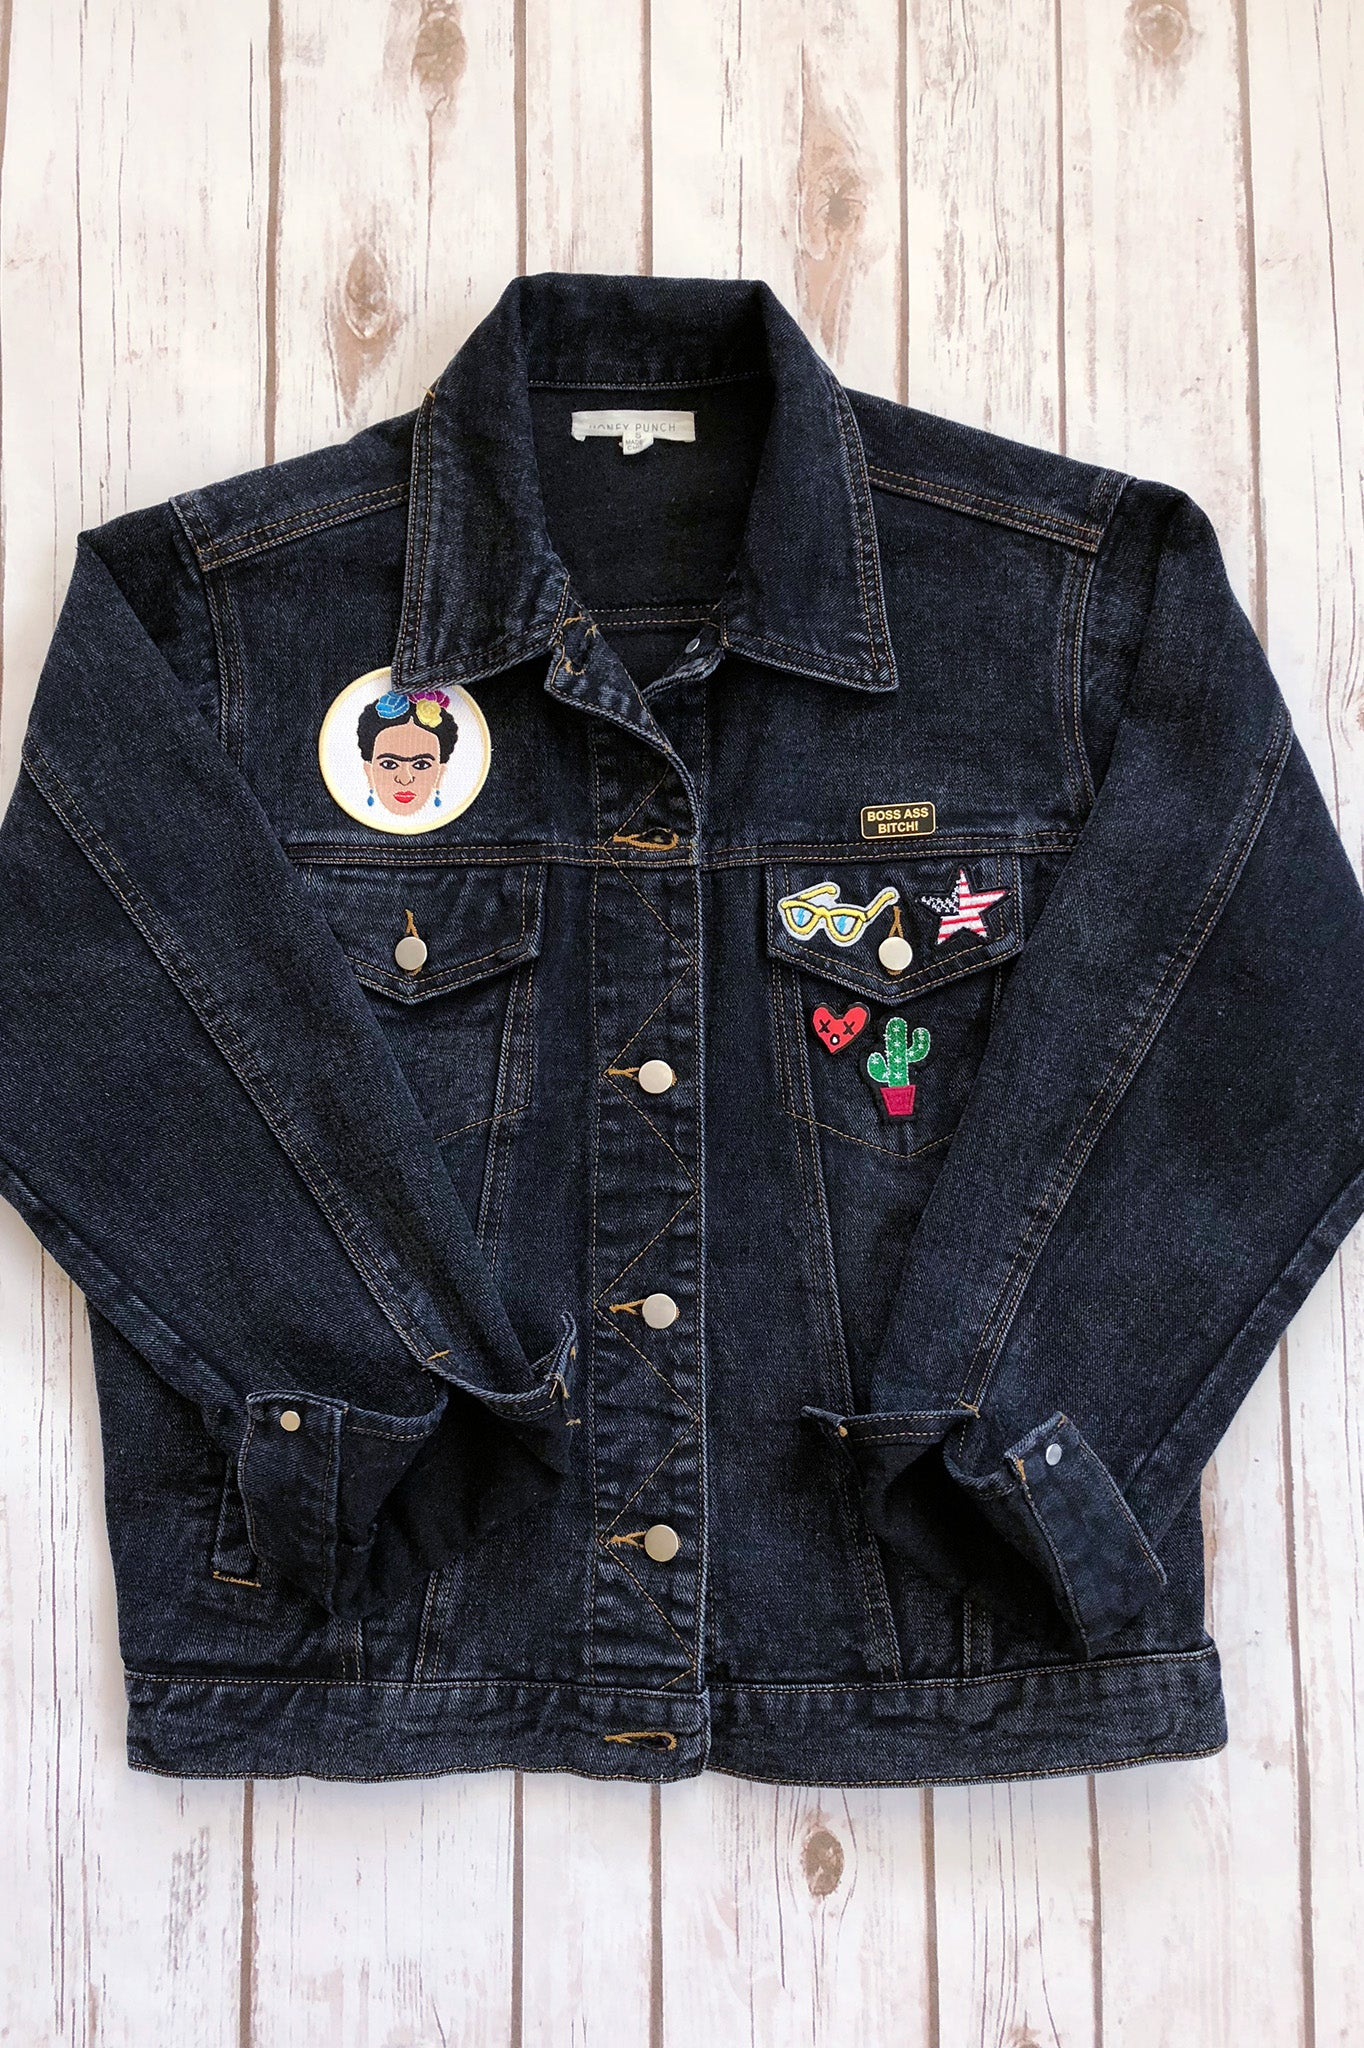 ShopMucho shows ways to add patches to your favorite items like denim jacket, beanie, and backpack